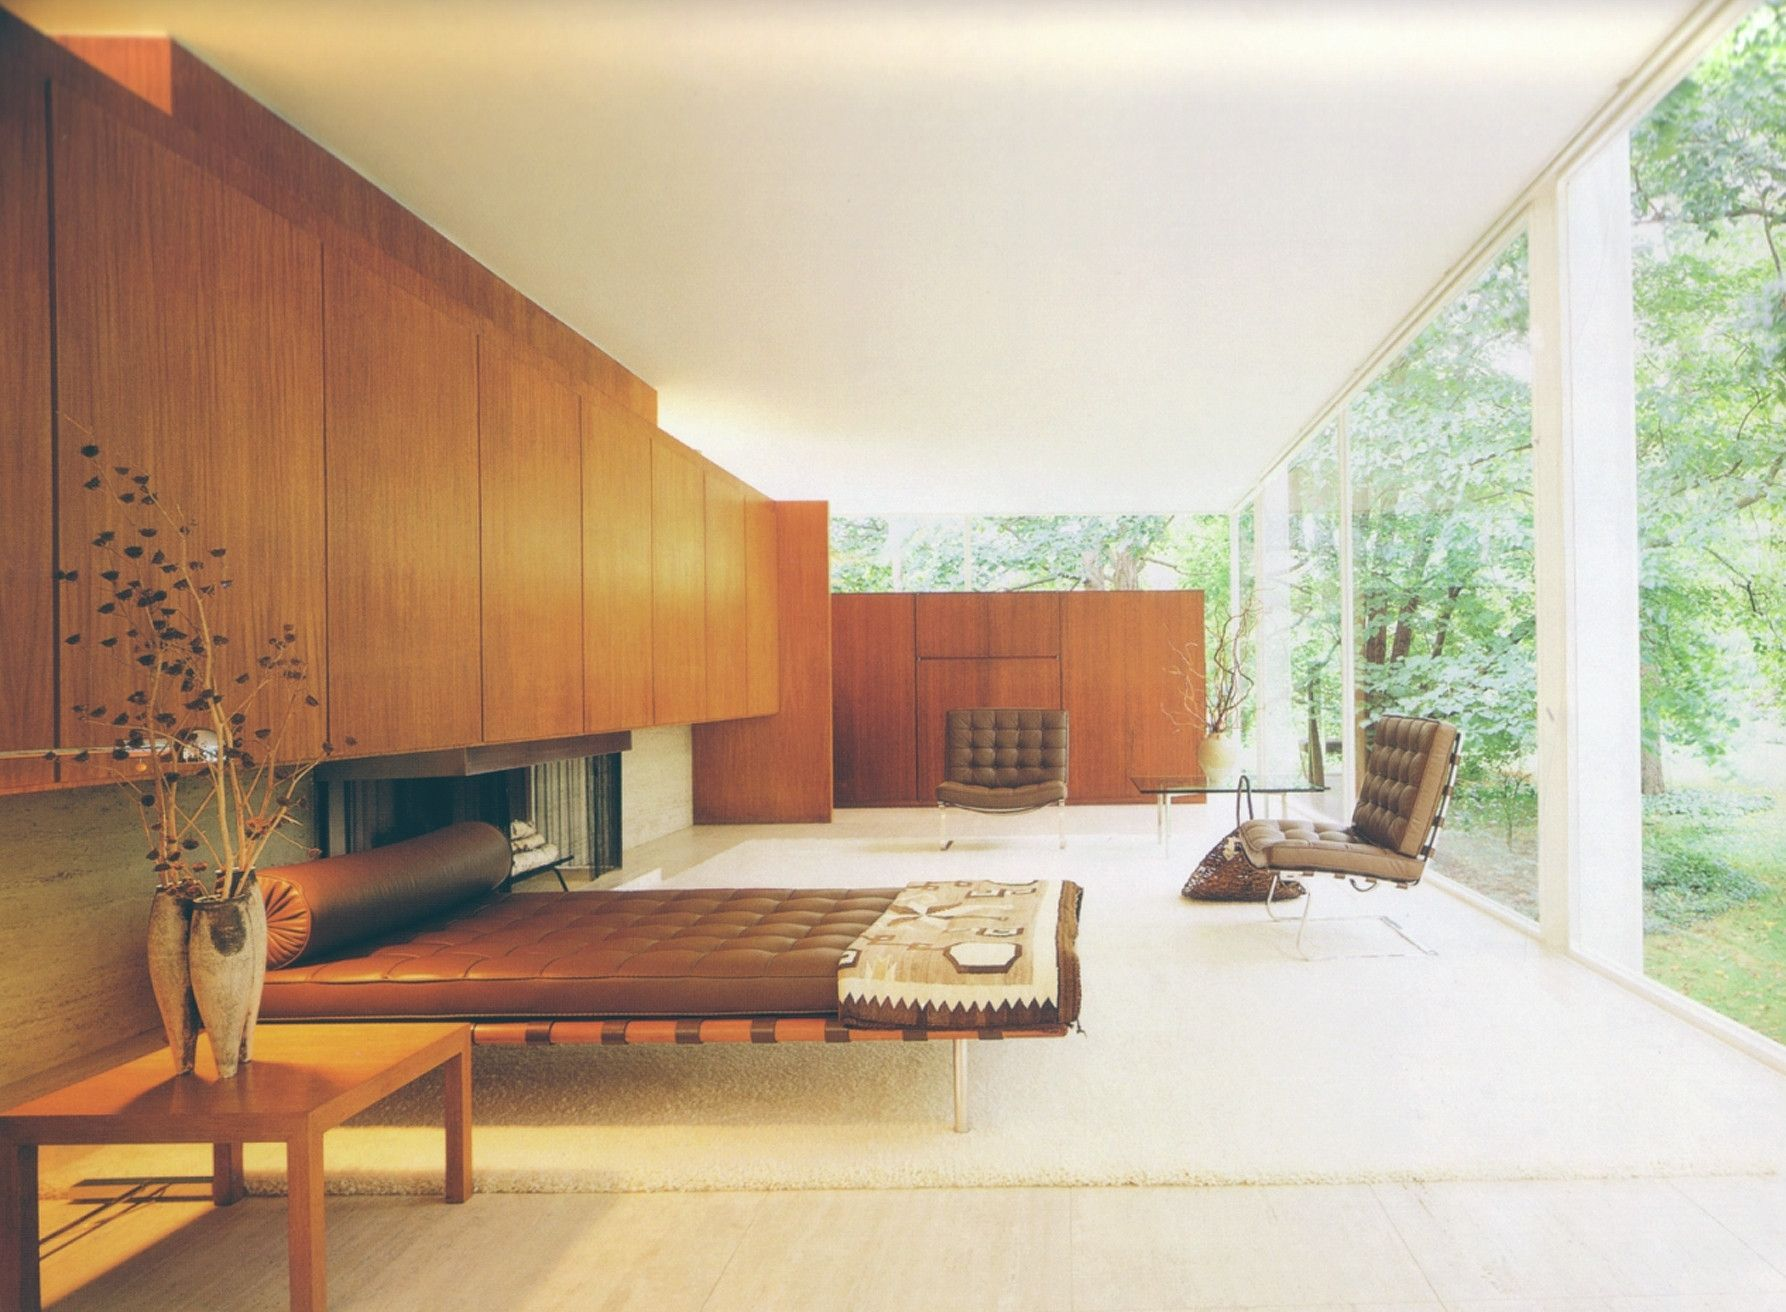 An interior shot of the farnsworth house mies van der rohes designed in 1945